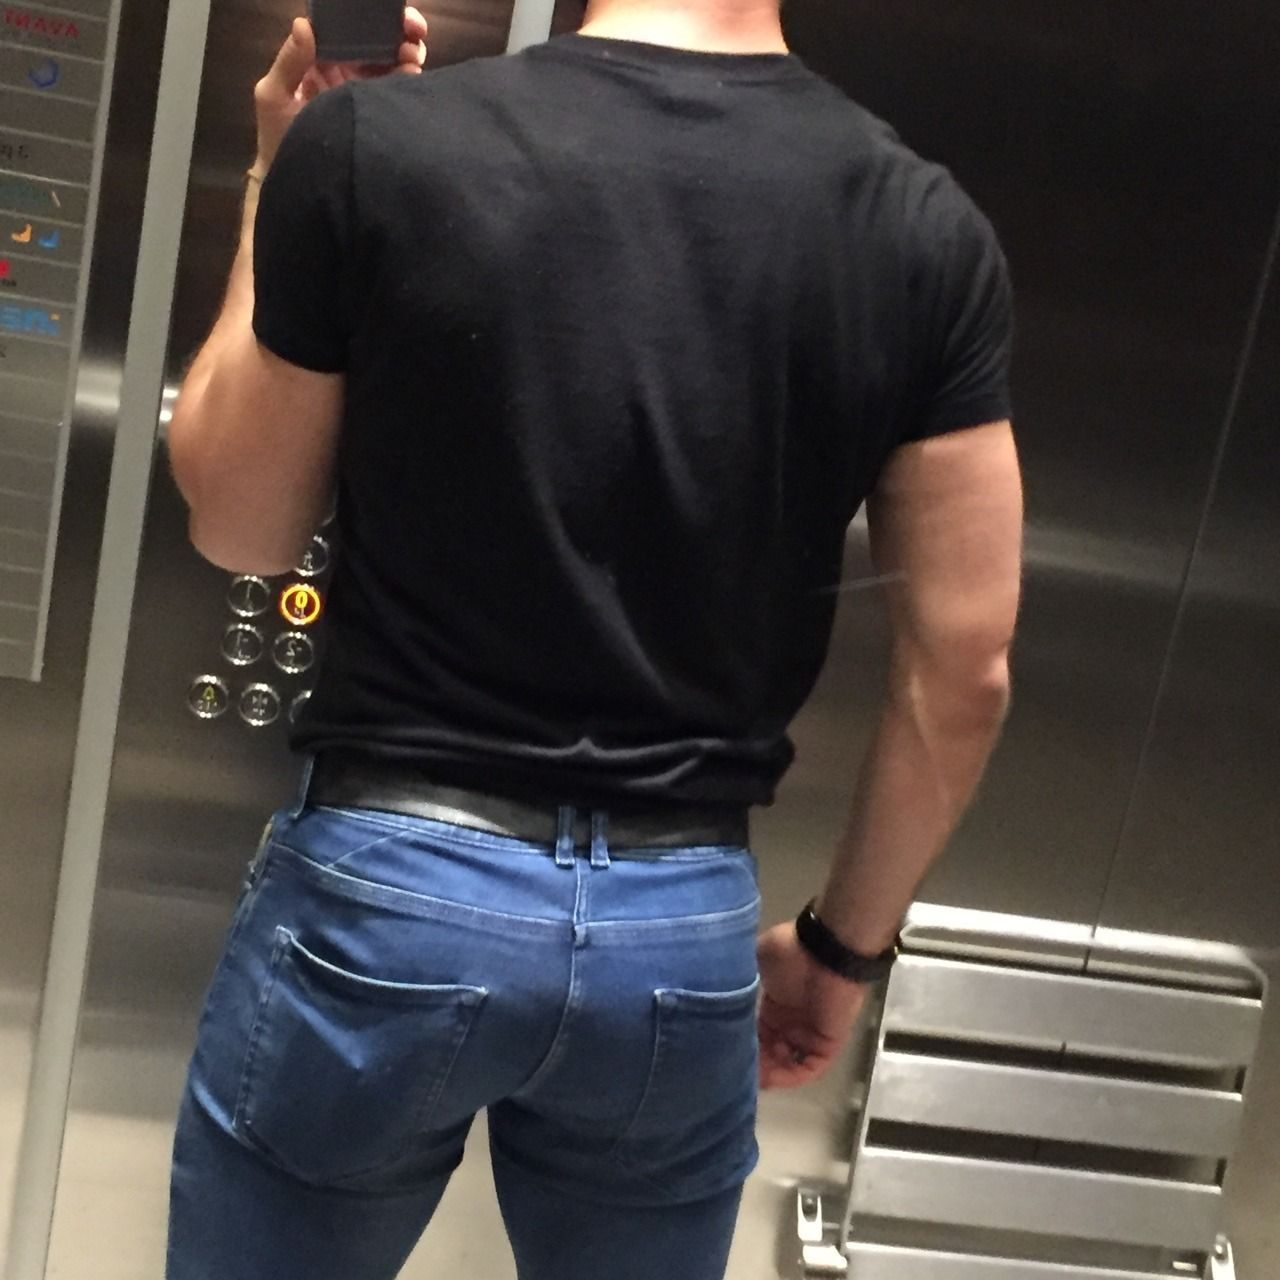 Pin by G Smith on Jeans | Men in tight pants, Skinny jeans